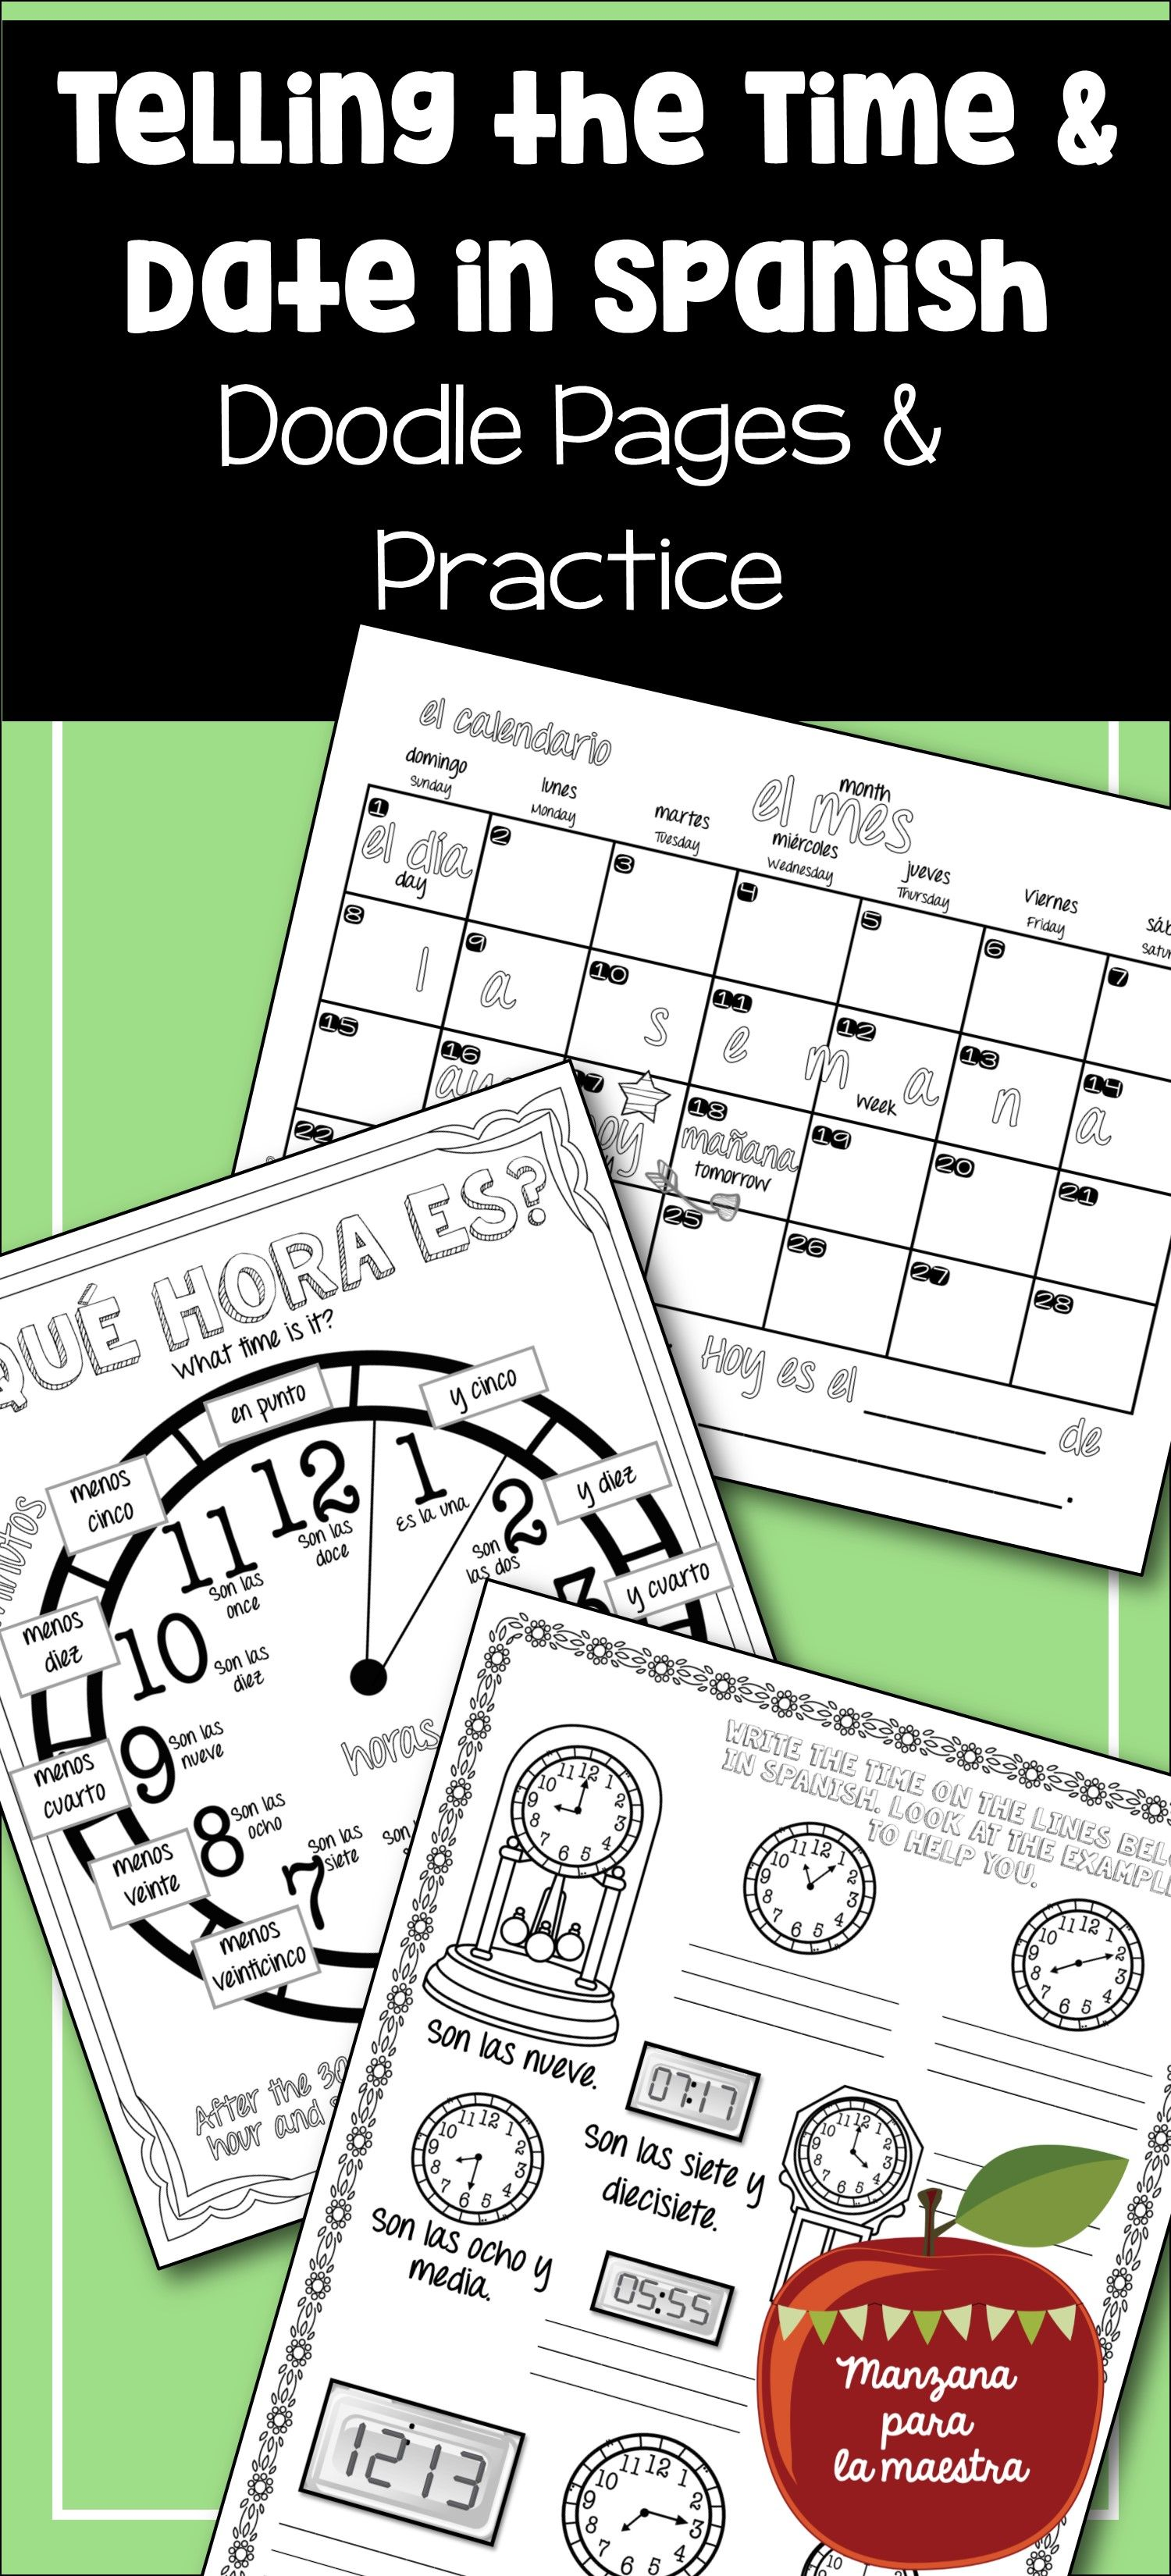 Telling Time And Date In Spanish Doodle Pages Worksheets And Notes Que Hora Es Doodle Pages Date In Spanish Learning Spanish [ 3300 x 1500 Pixel ]